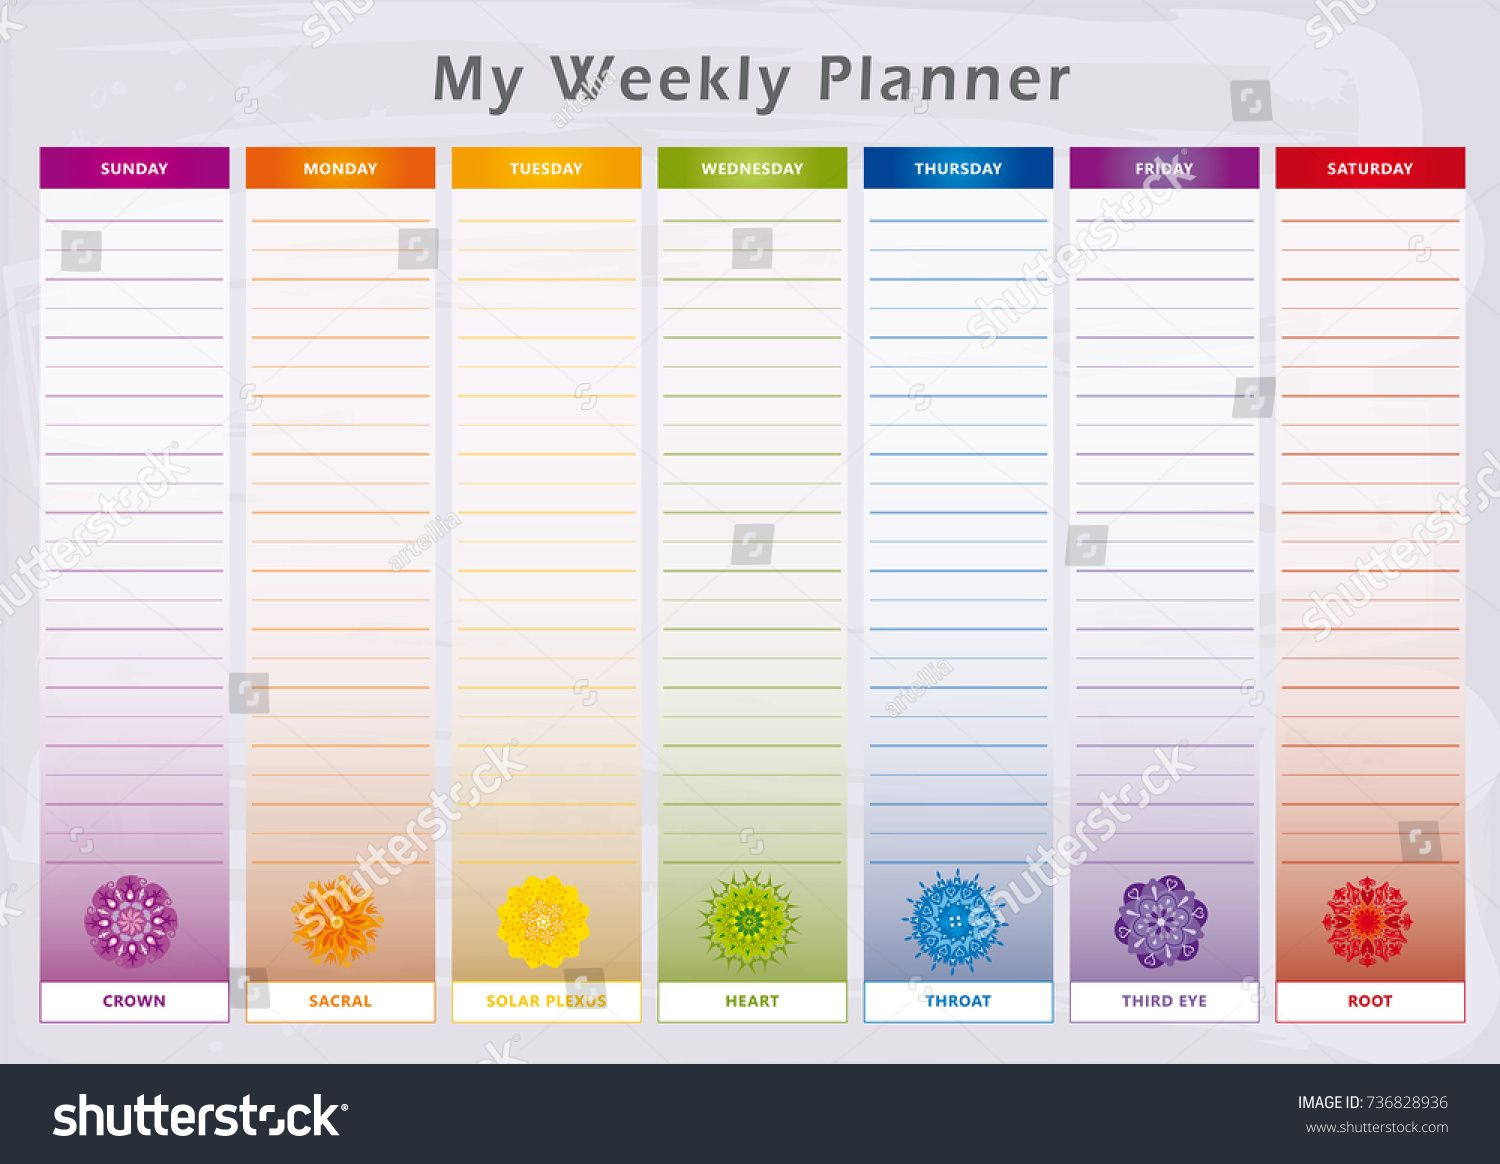 Weekly Planner With 7 Days And Corresponding Chakras In for 7 Days A Week Planner